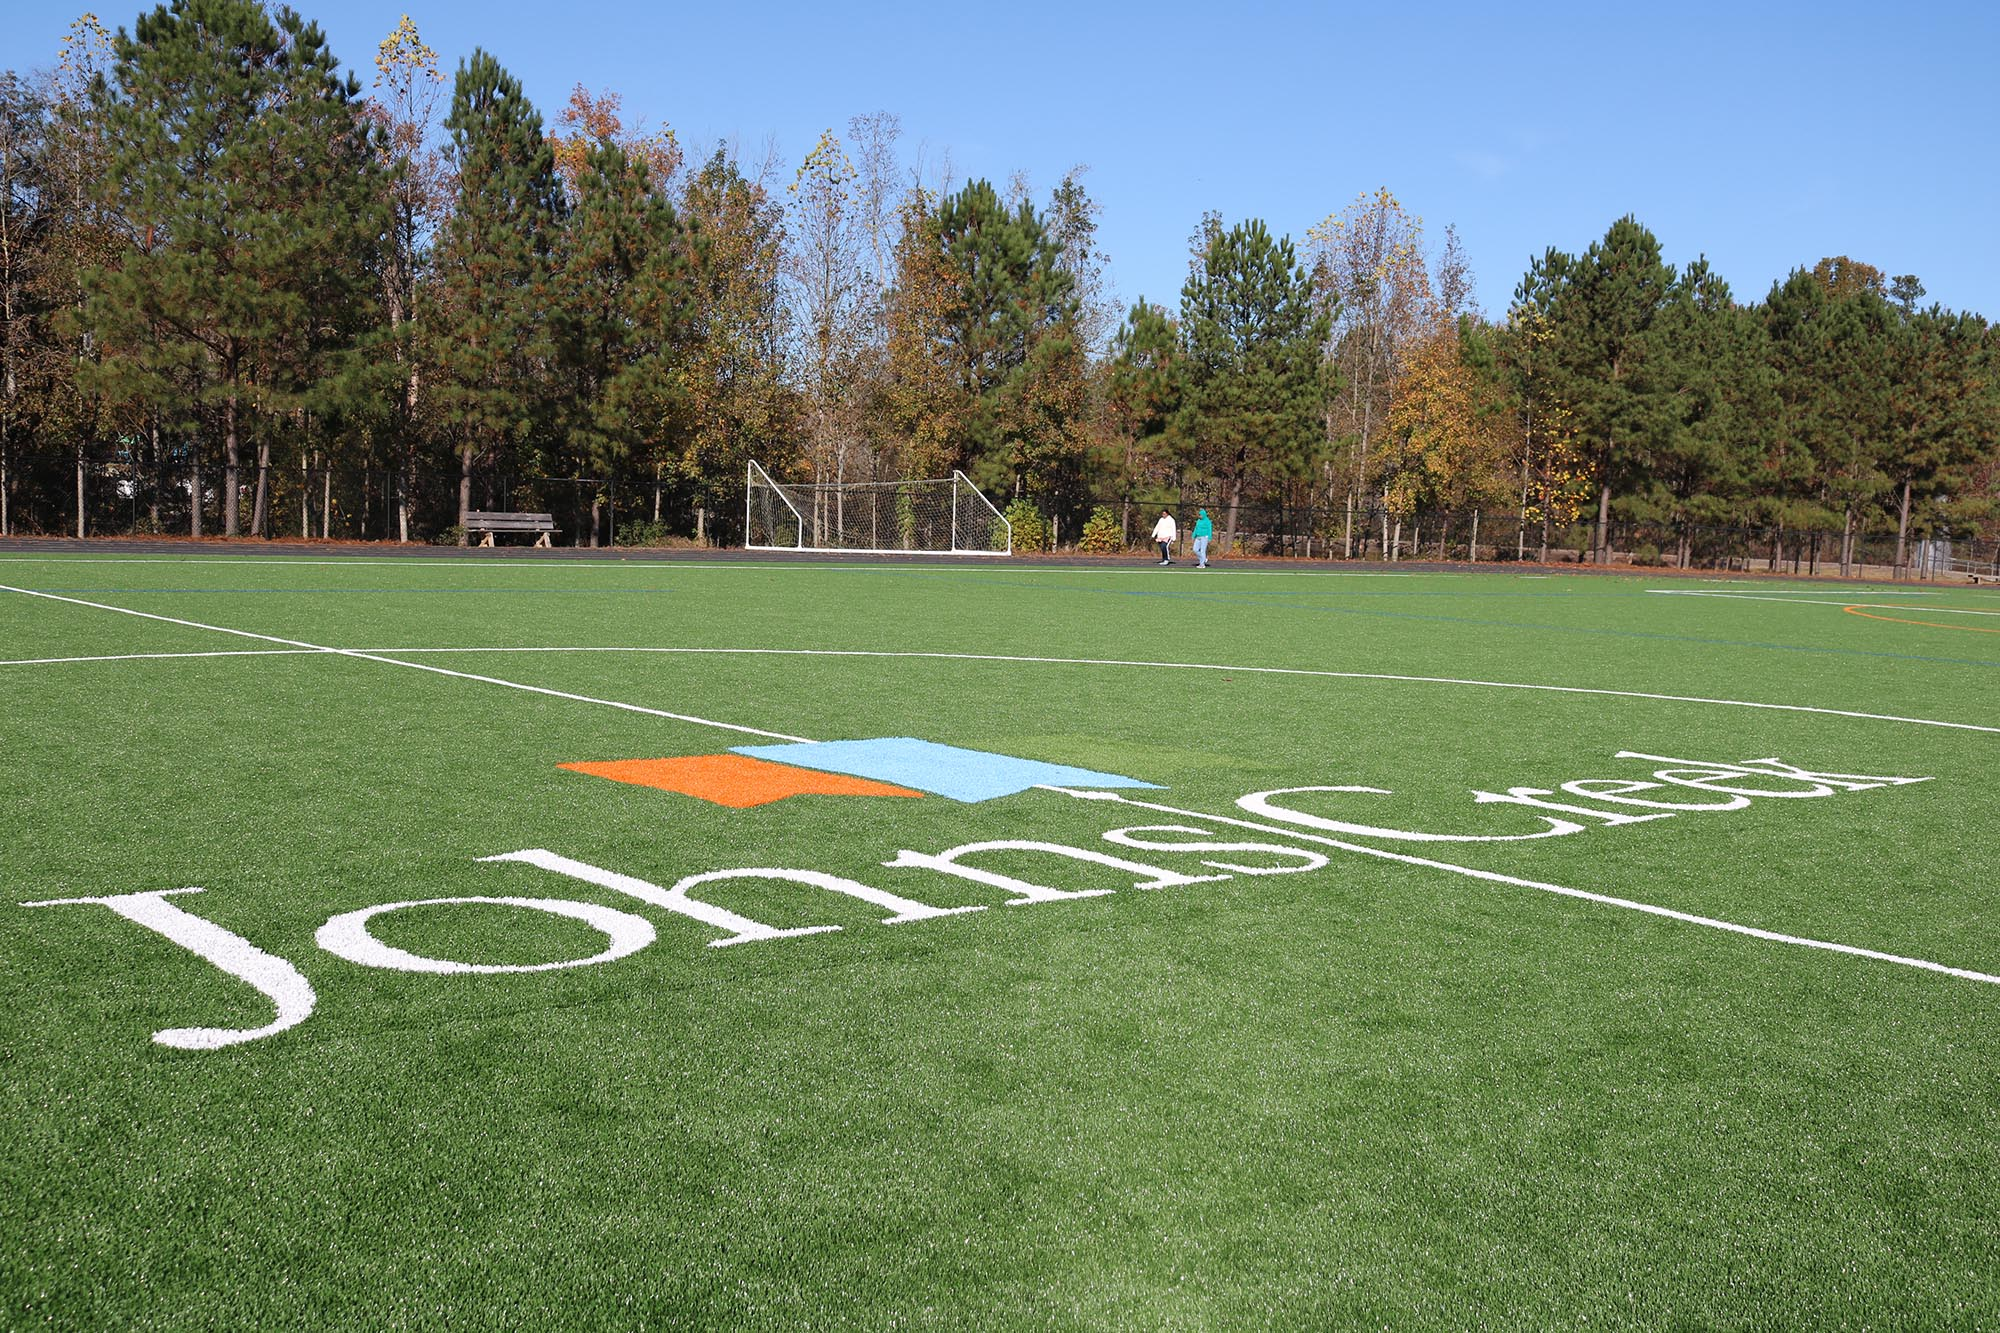 Shakerag Park's synthetic turf field opens for play